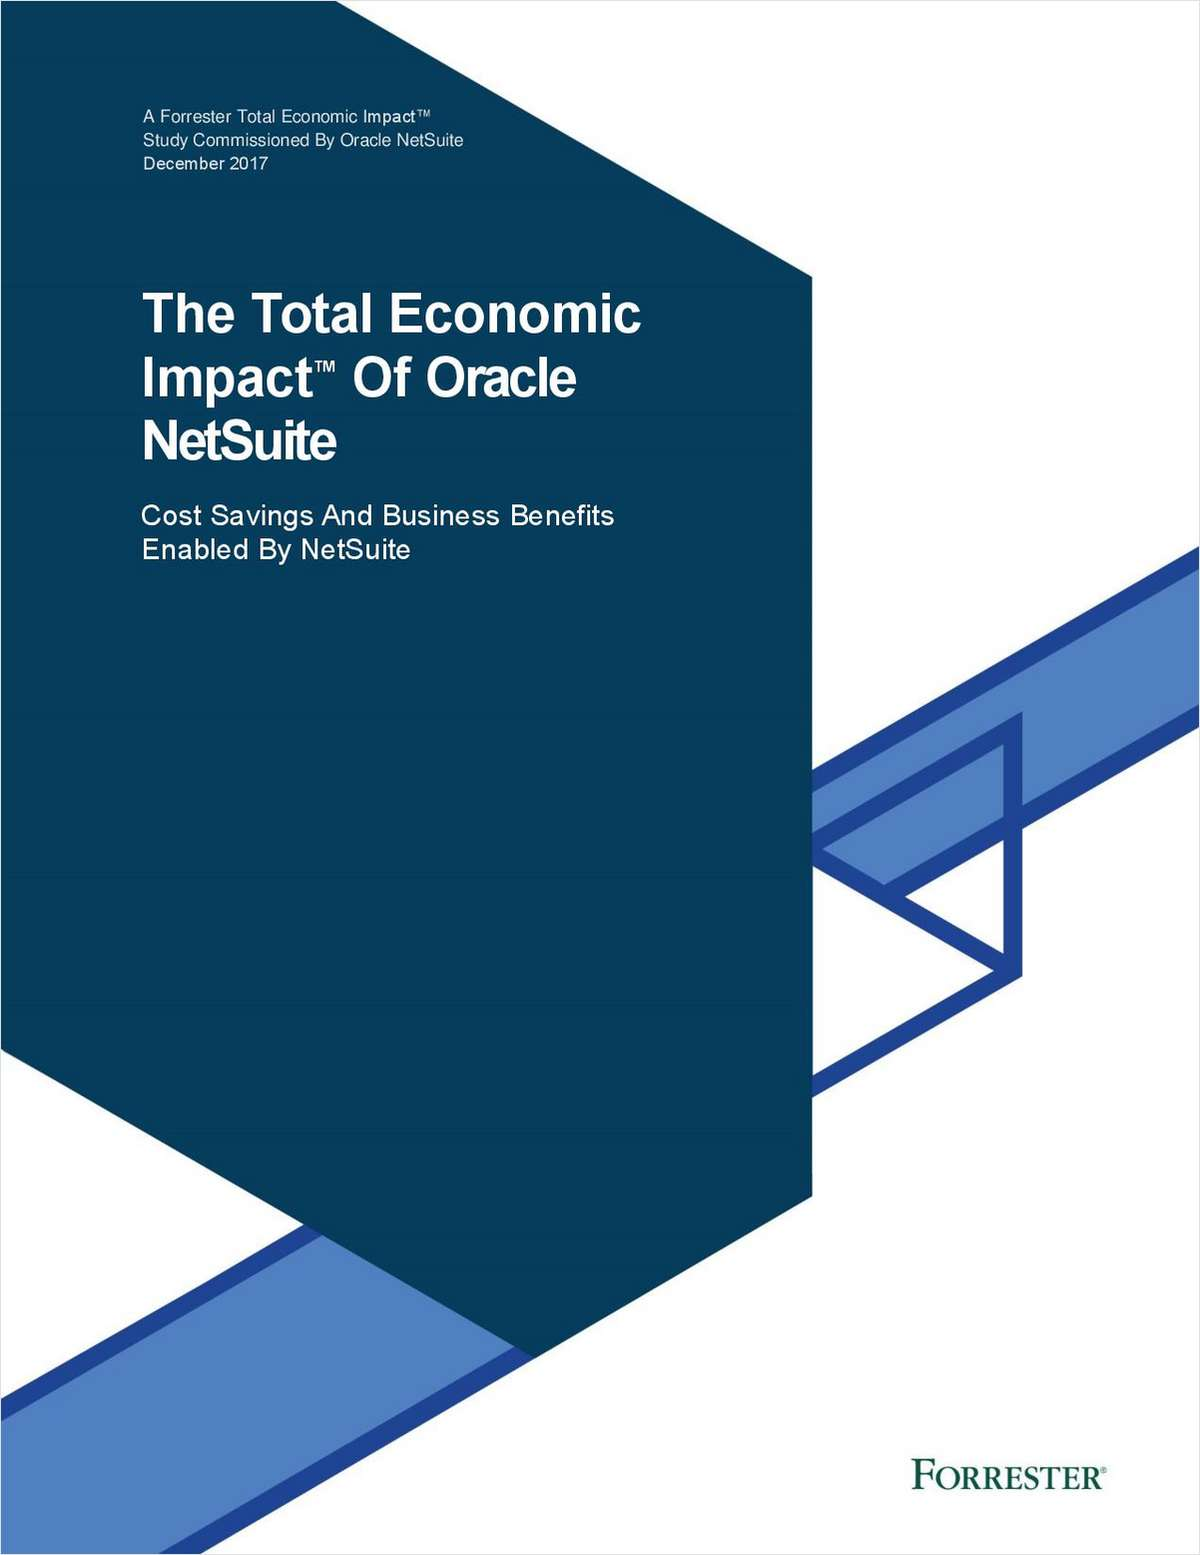 Forrester Total Economic Impact of Oracle+NS